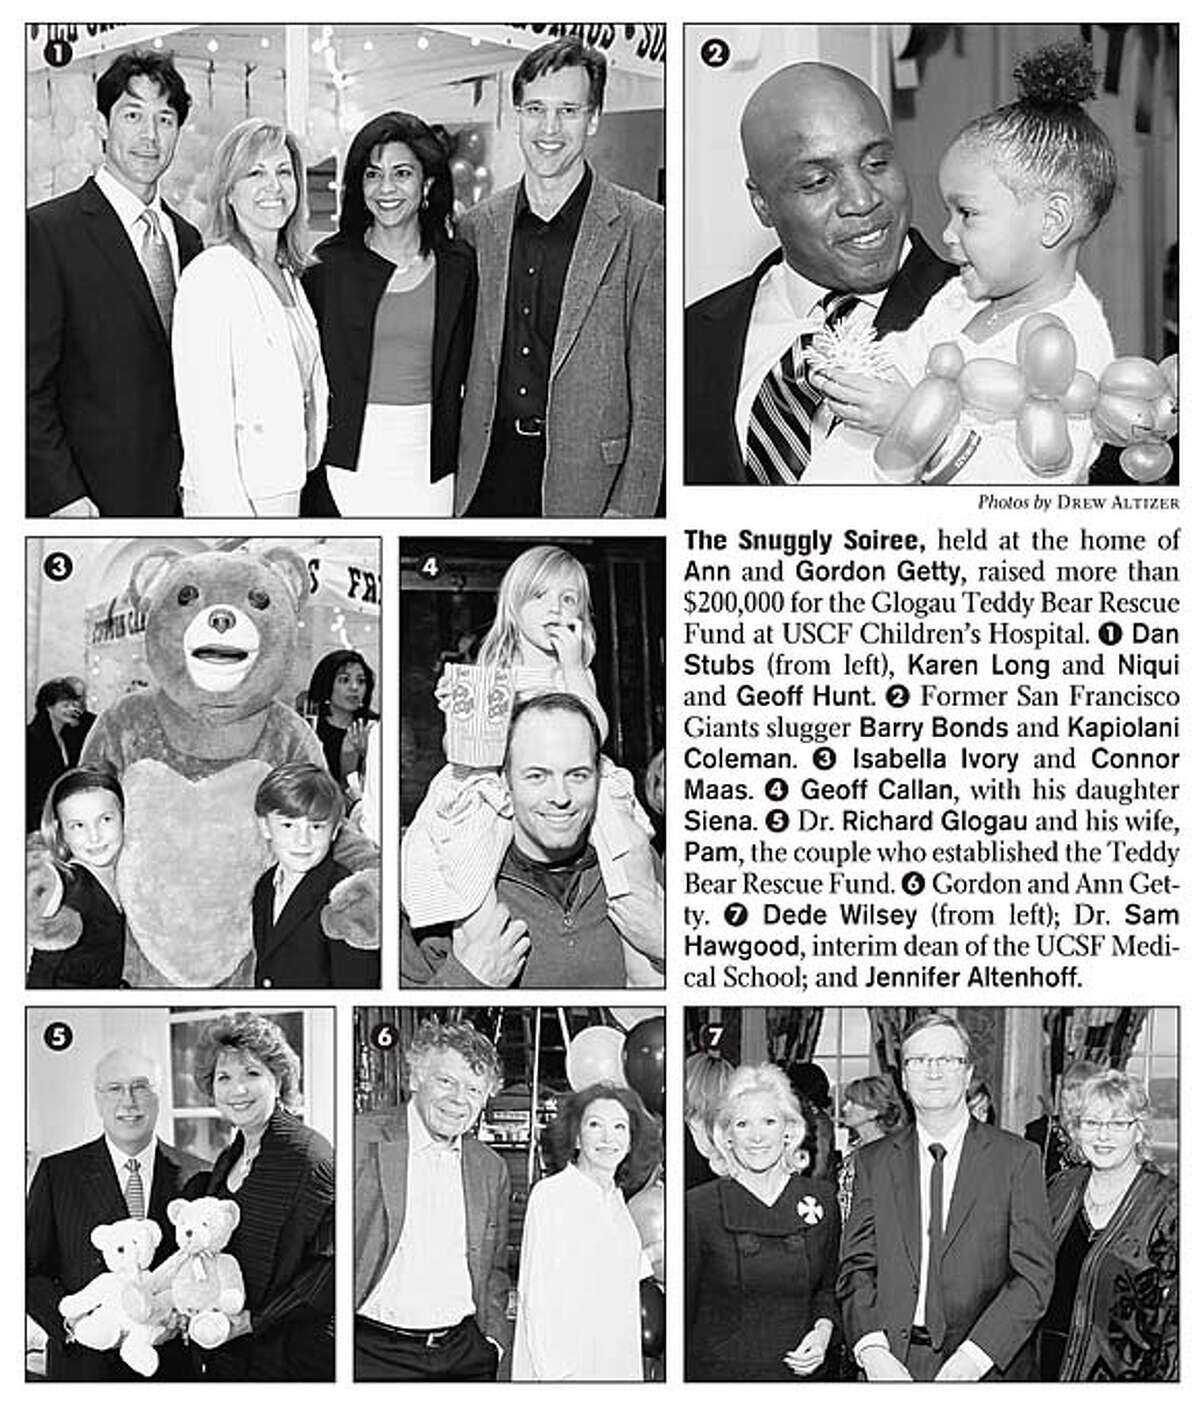 The Snuggly Soiree, held at the home of Ann and Gordon Getty, raised more than $200,000 for the Glogau Teddy Bear Rescue Fund at USCF Children's Hospital. Photos by Drew Altizer